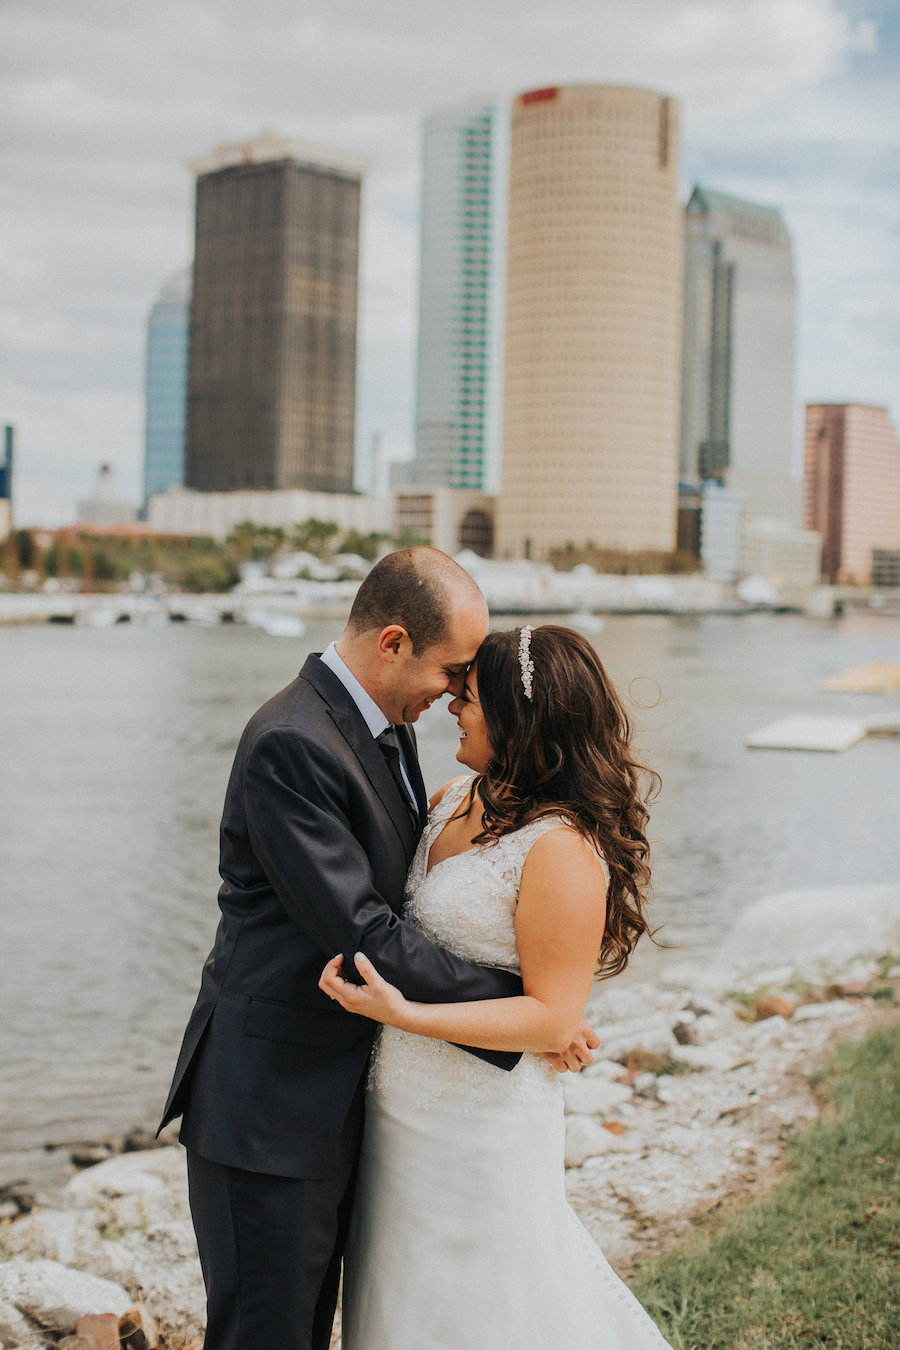 Bride and Groom Wedding Portrait with City Skyline and Waterfront View | Downtown Tampa Wedding Photographer Rad Red Creative